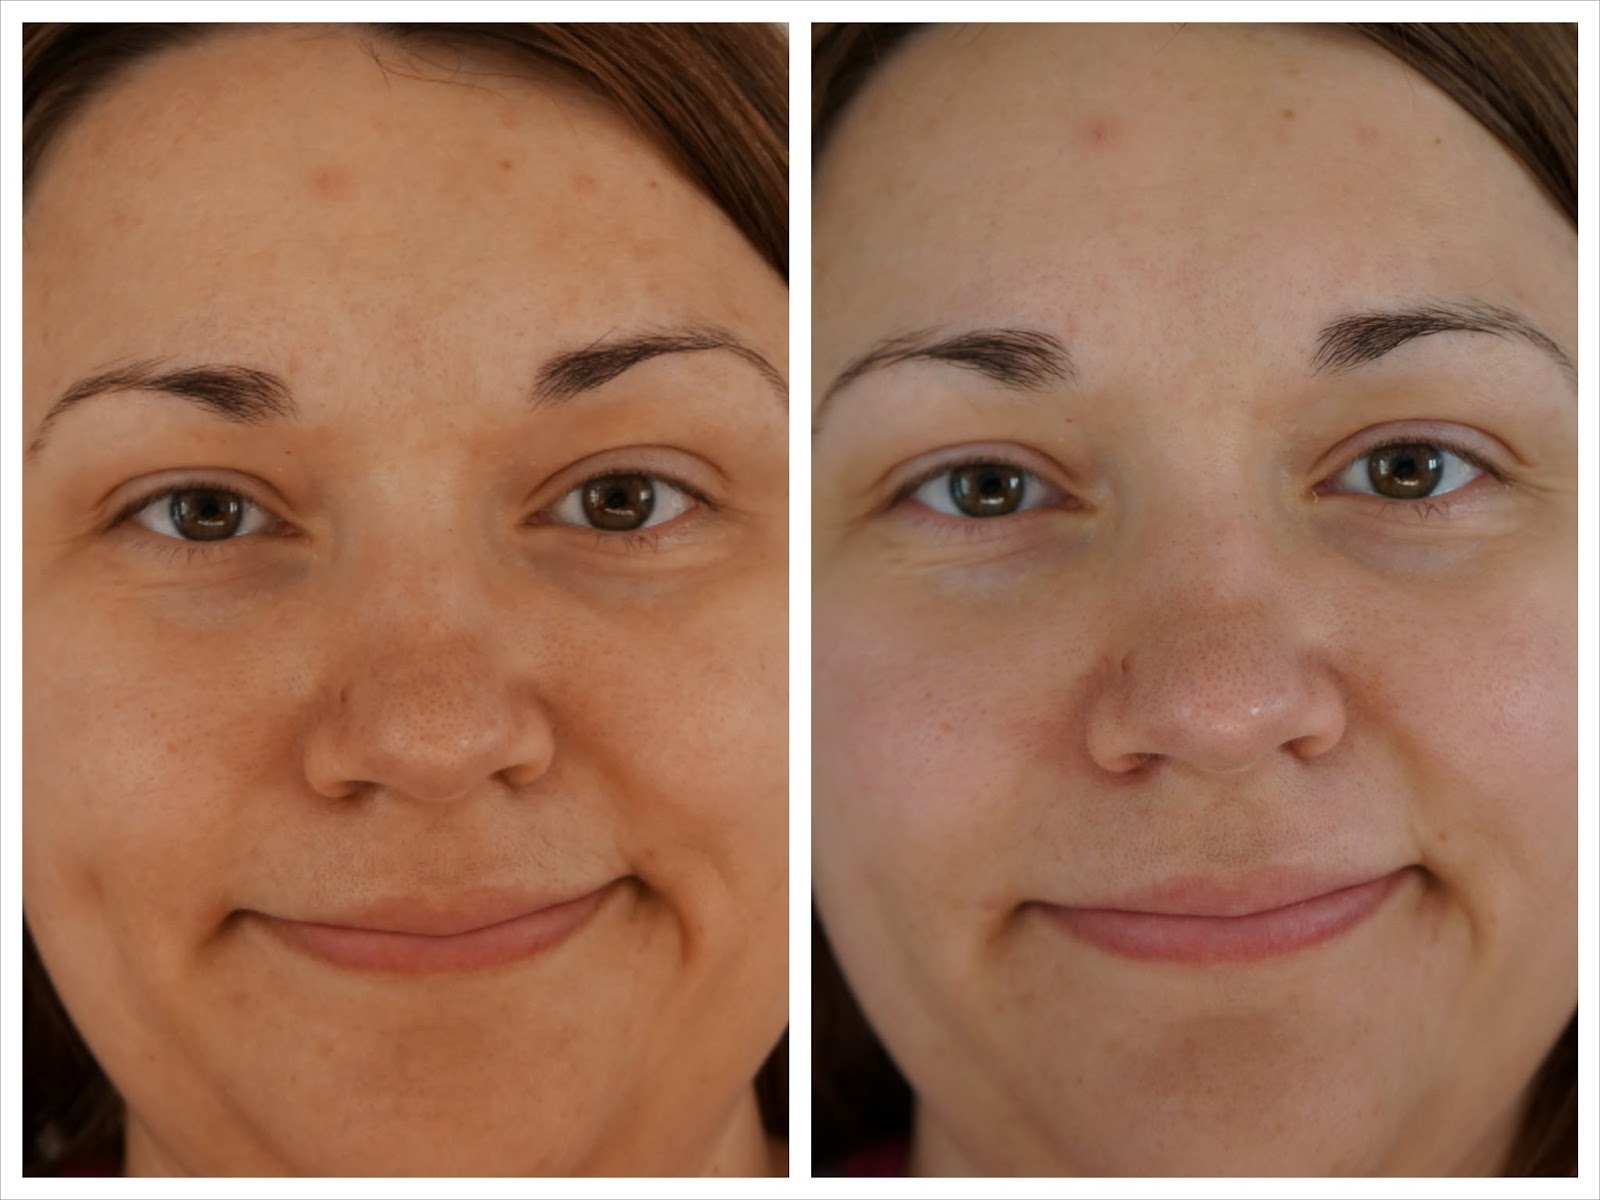 before and after pictures after a green peel at new york laser clinic